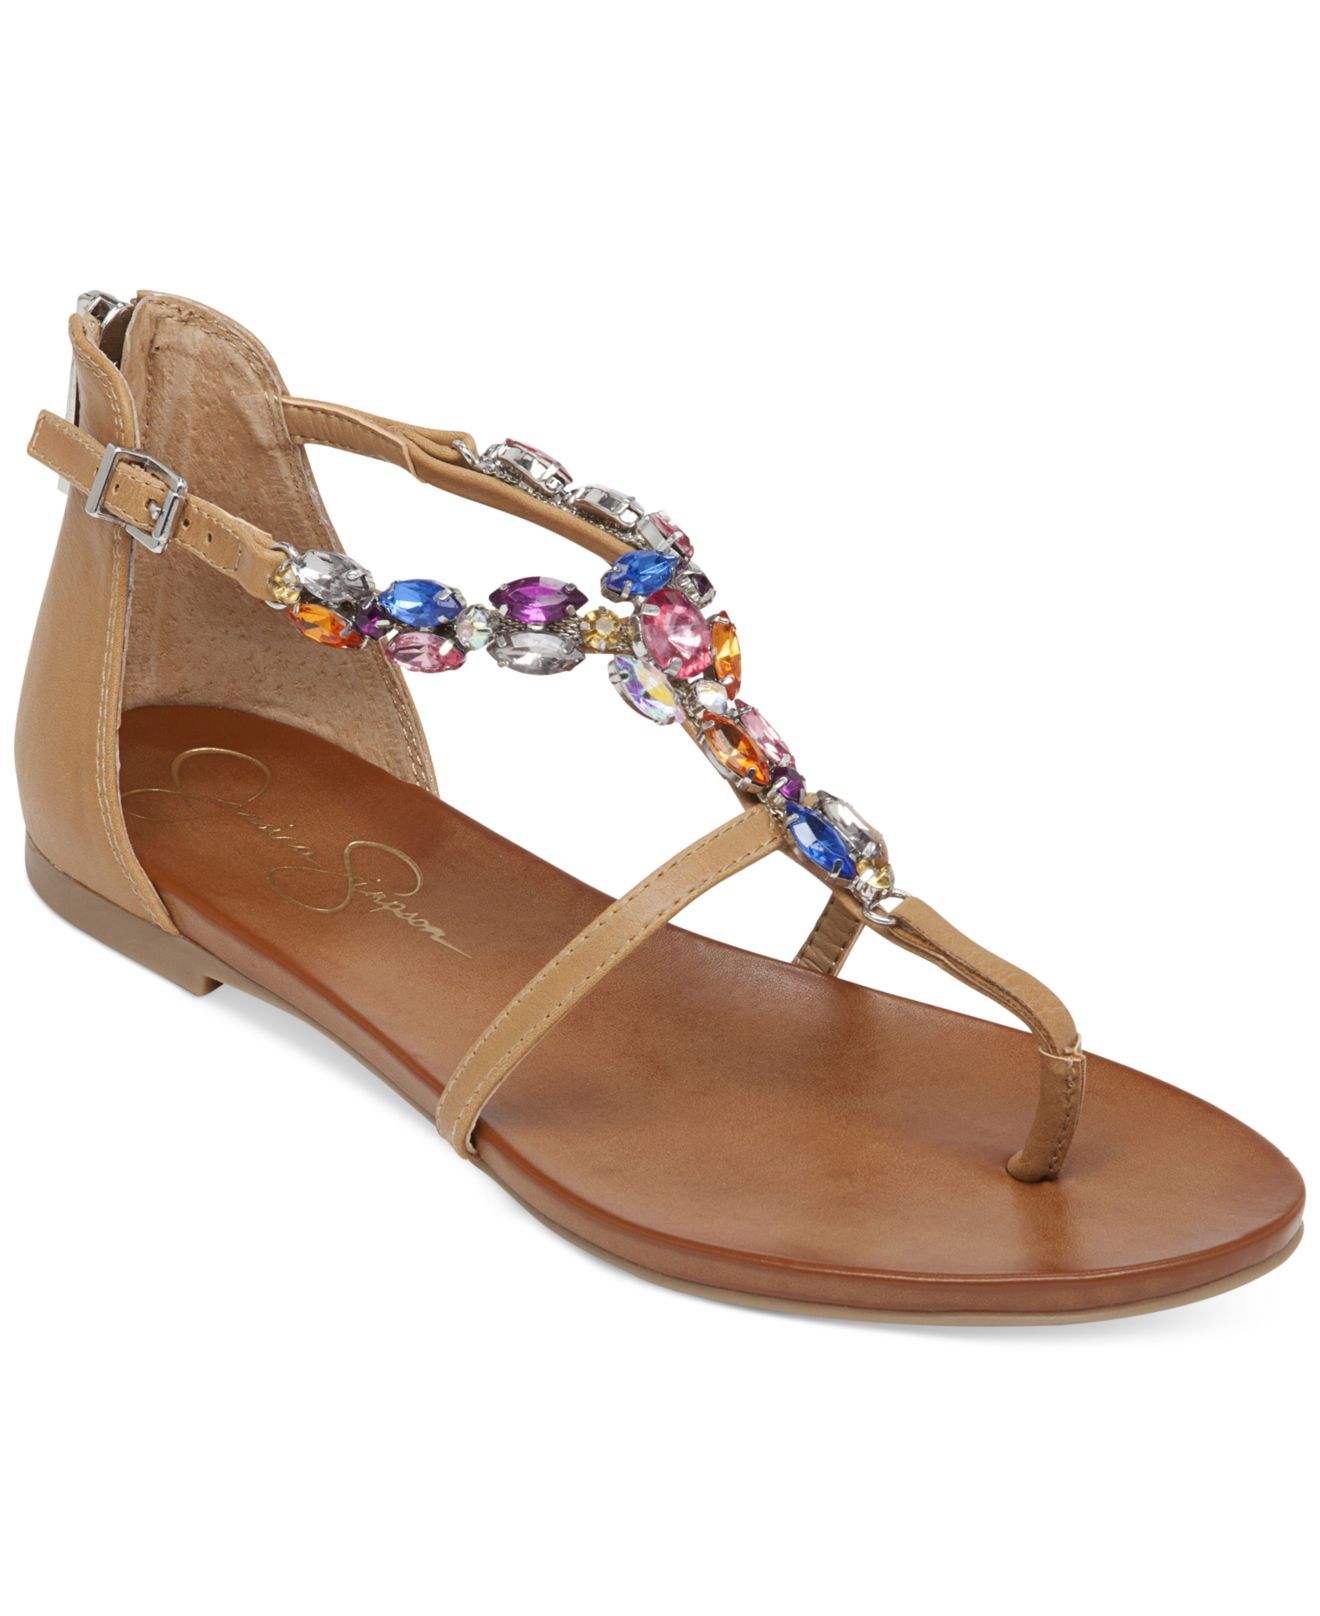 1f30d89f7 Jessica Simpson Whitten Jeweled Flat Thong Sandals in Brown - Lyst